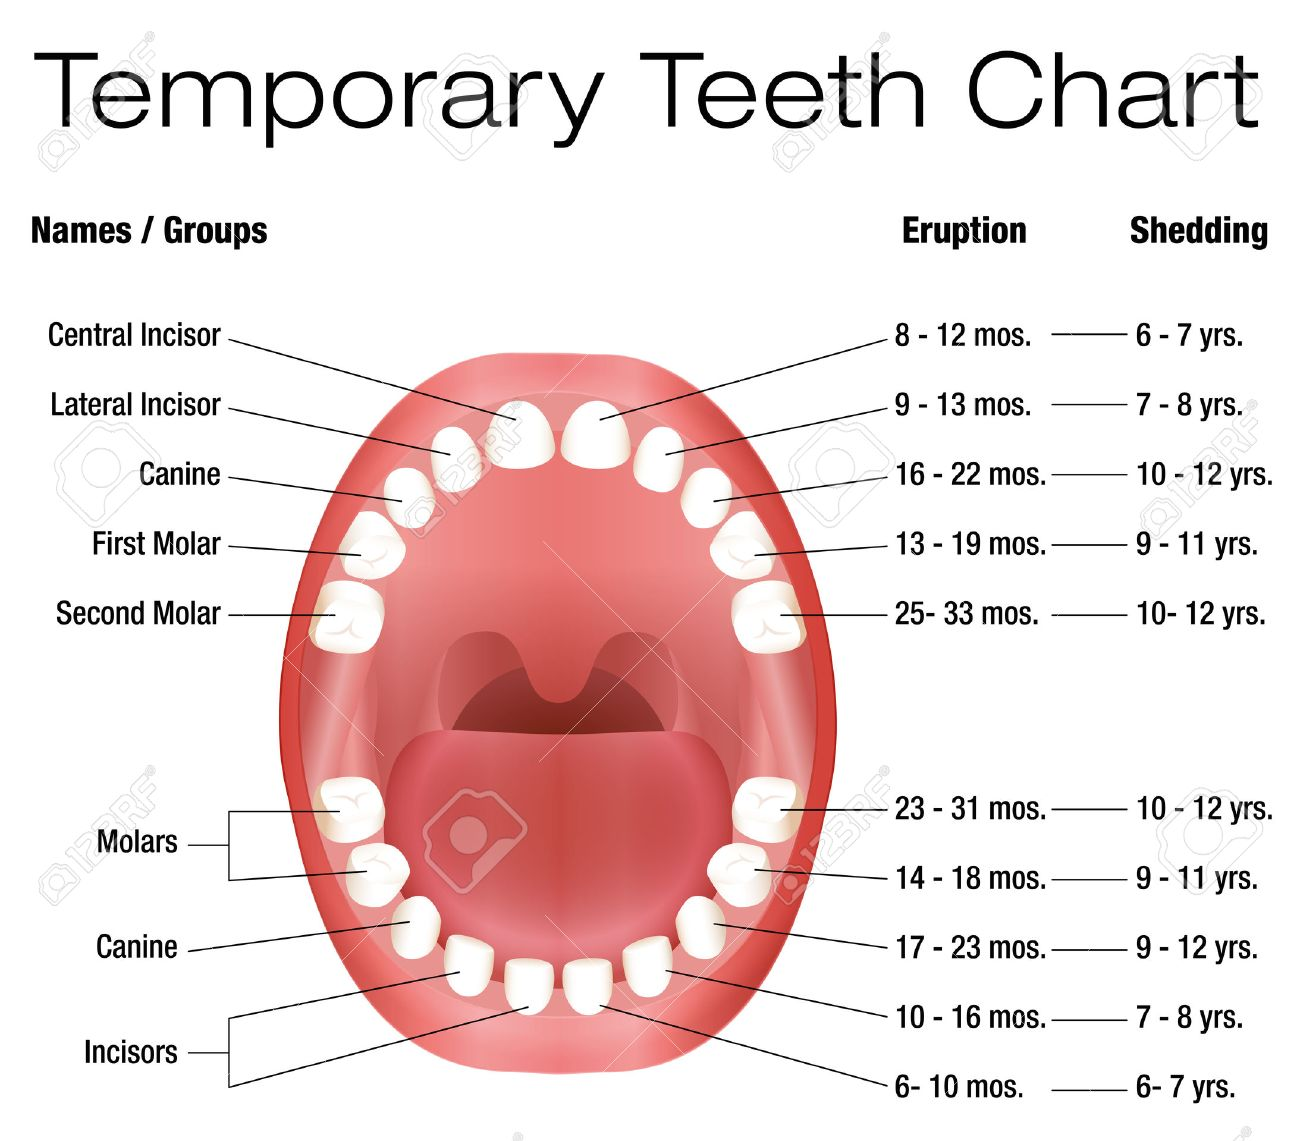 Temporary teeth names groups period of eruption and shedding temporary teeth names groups period of eruption and shedding of the childrens teeth ccuart Image collections